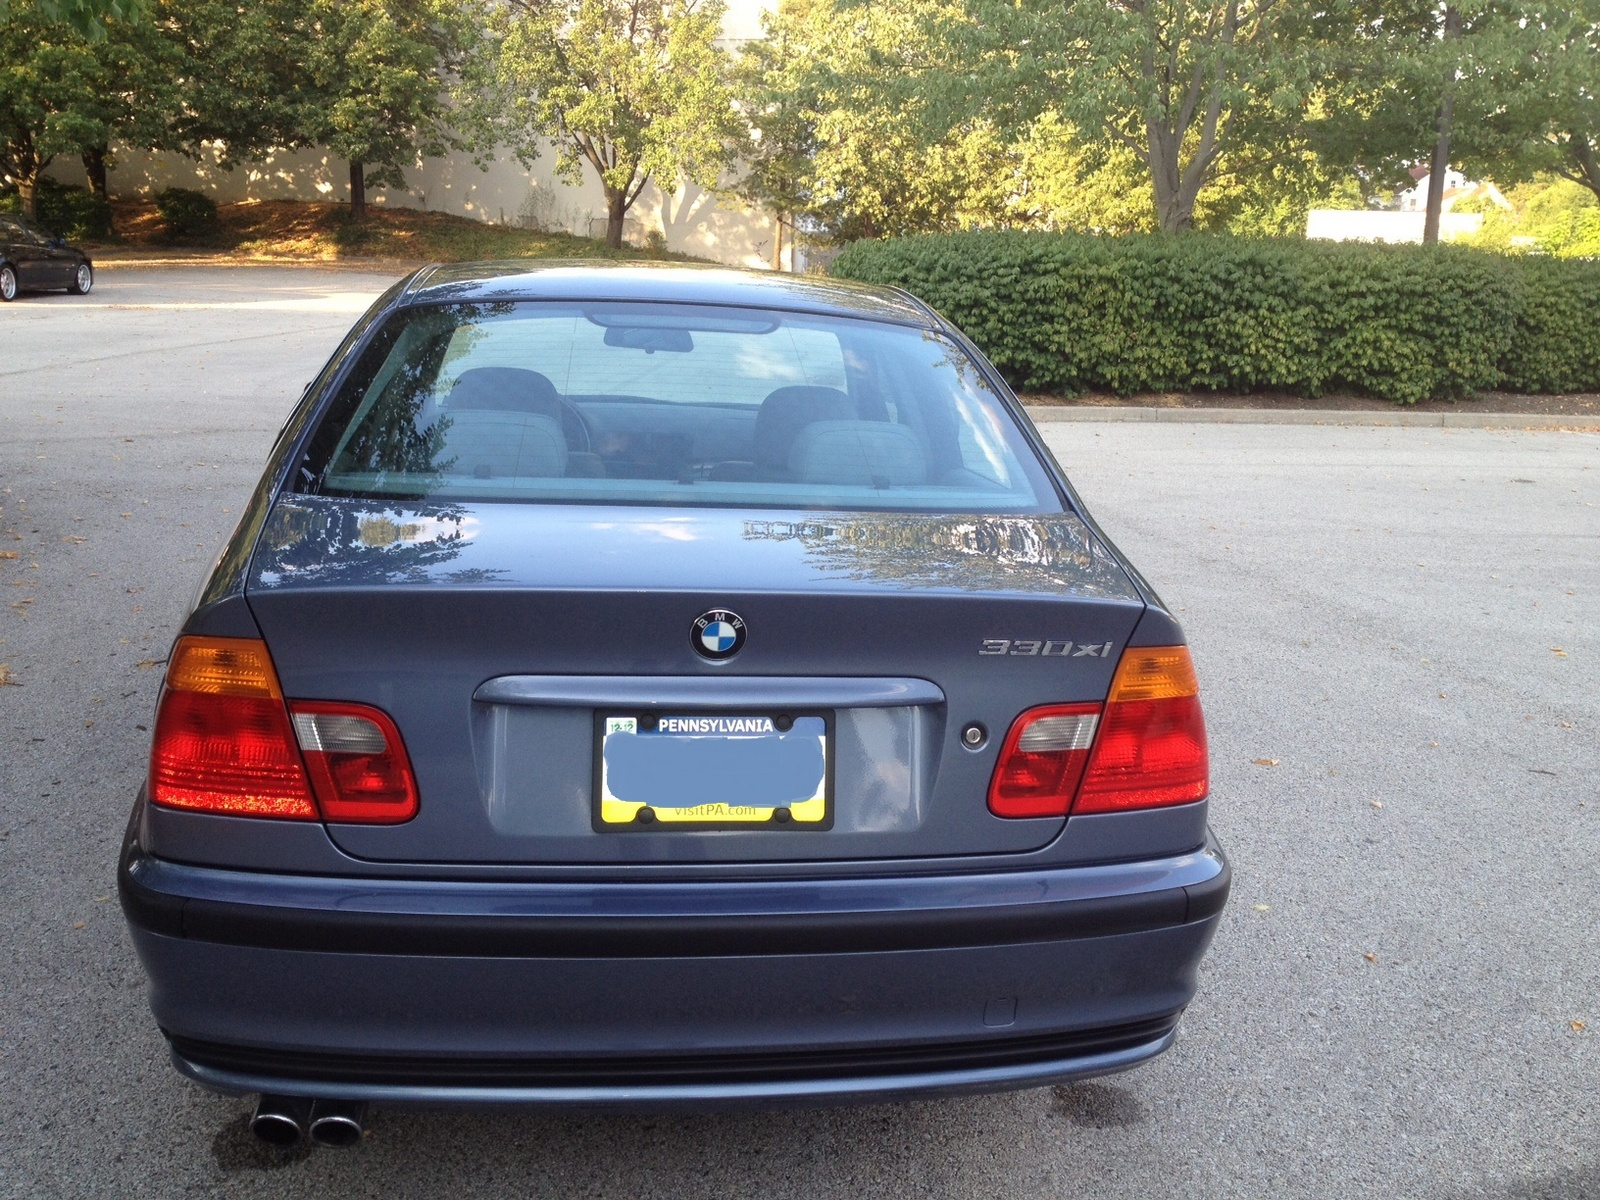 BMW 3 series 330xi 2001 photo - 11